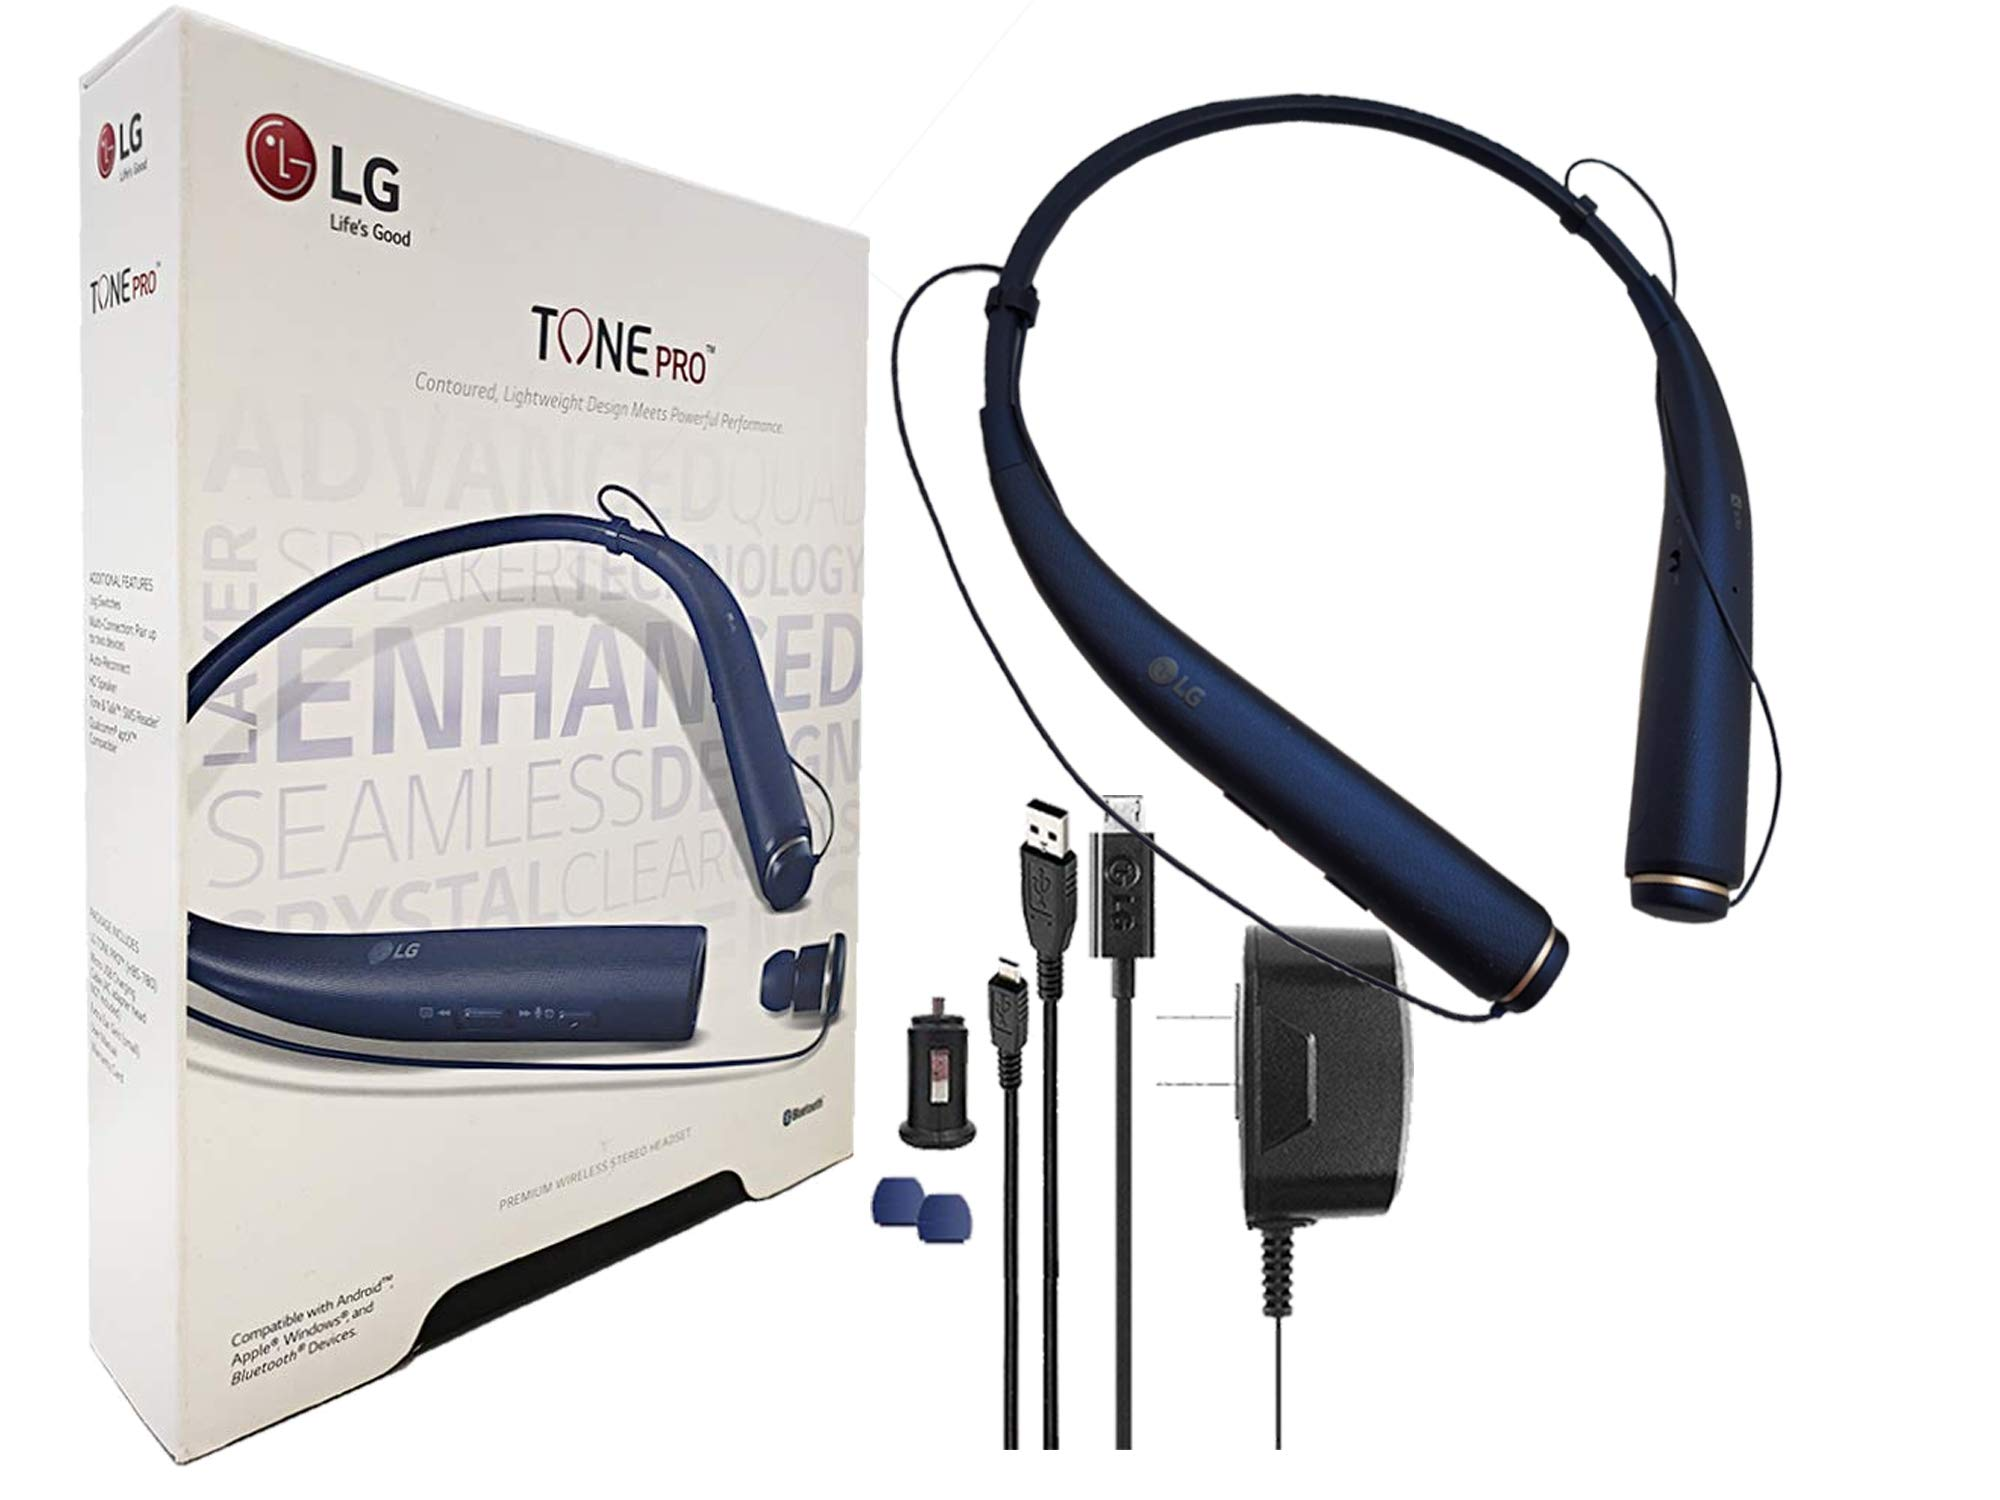 LG Tone 780 - Bluetooth Wireless Stereo Headset with Car Charger, Ear Gels with Car/Wall Charger (US Retail Packing) by LG (Image #1)